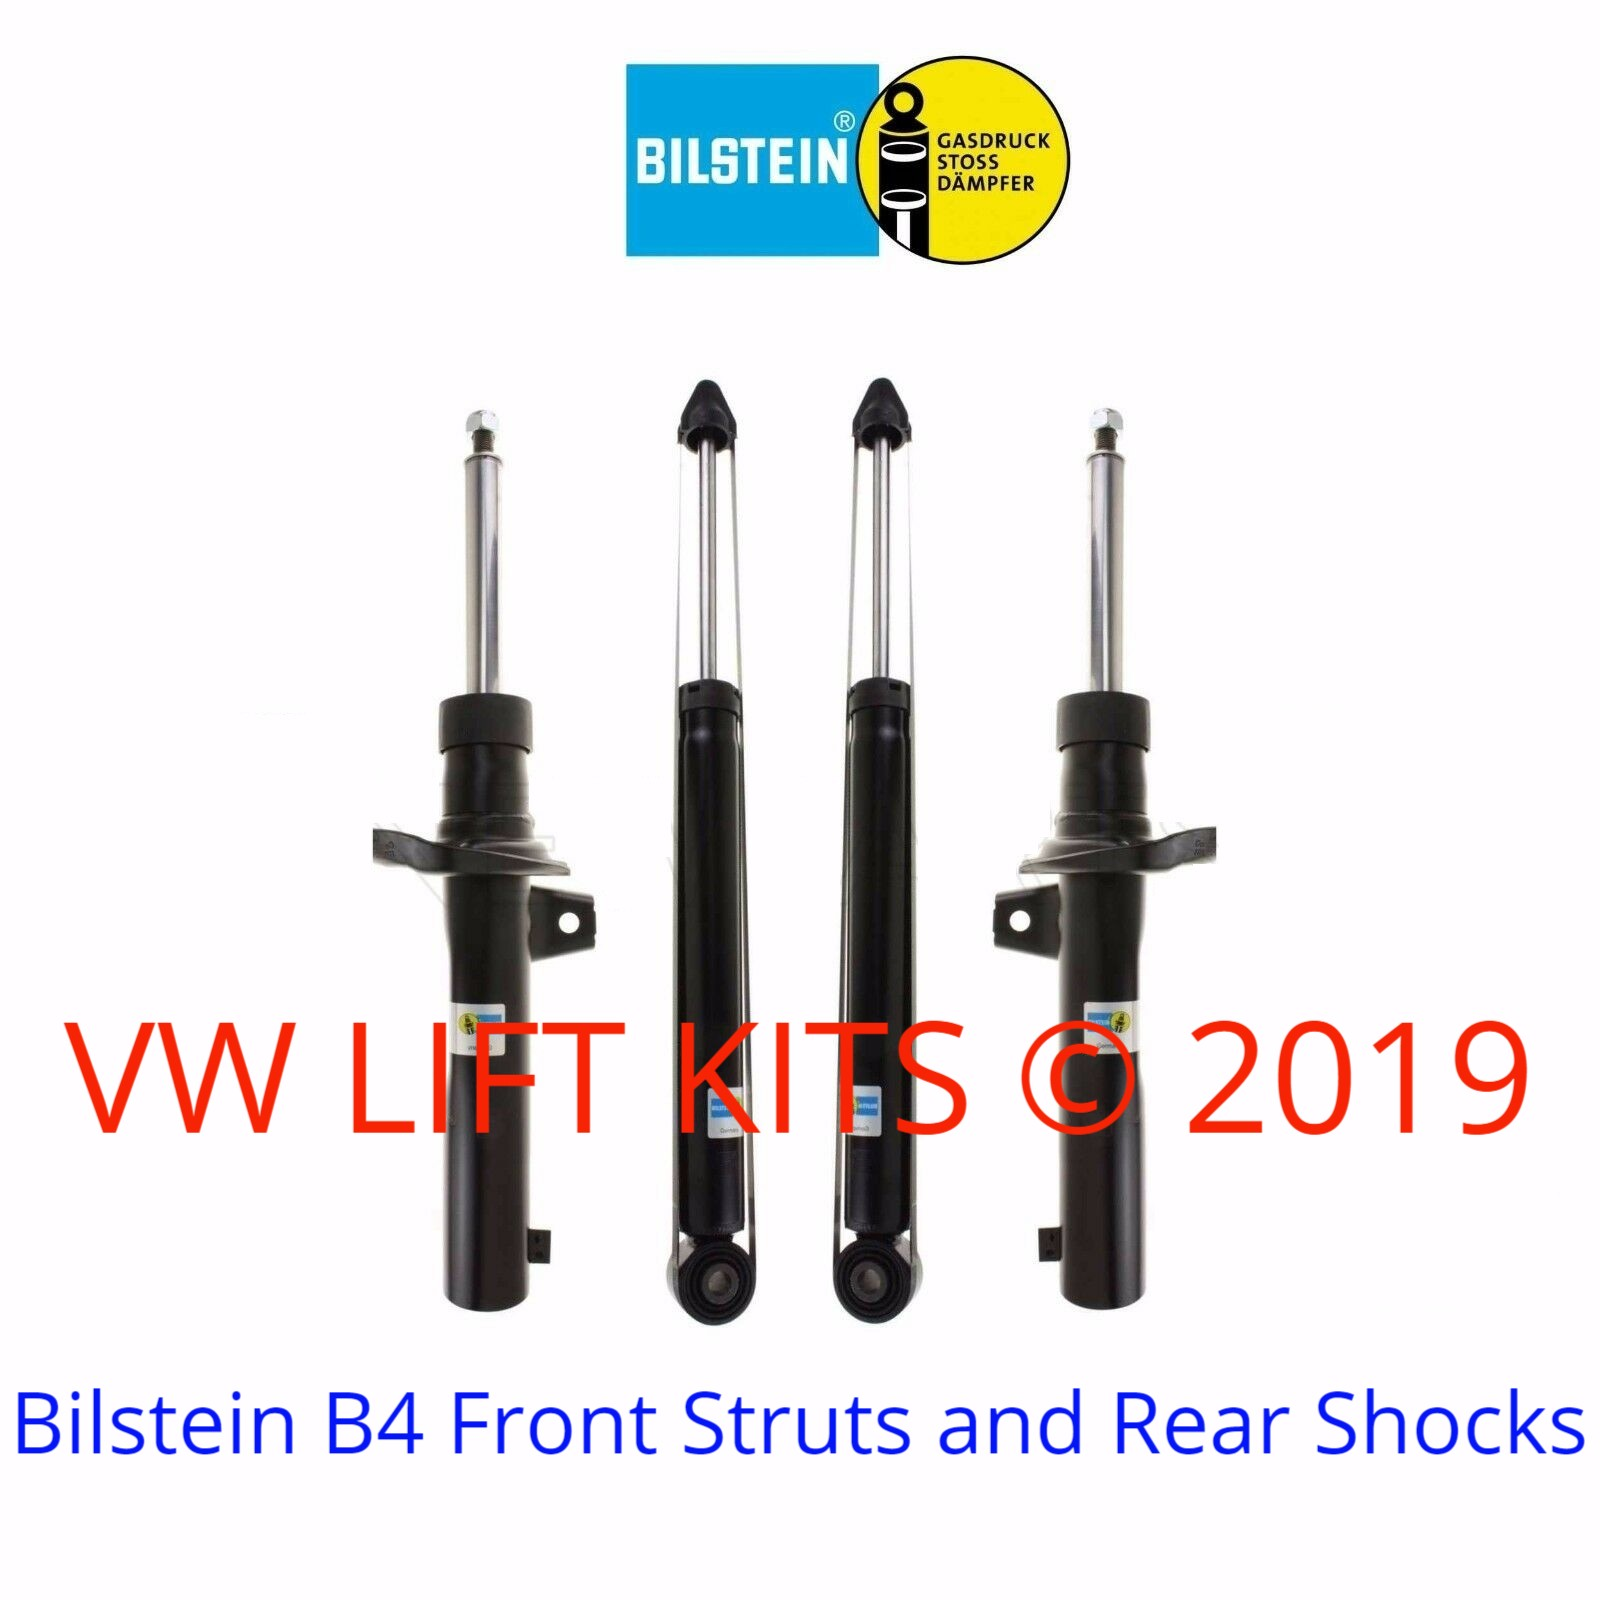 Firmer Bilstein Front Struts and Rear Shocks for MK5 VW Beetle A5 2011-2019